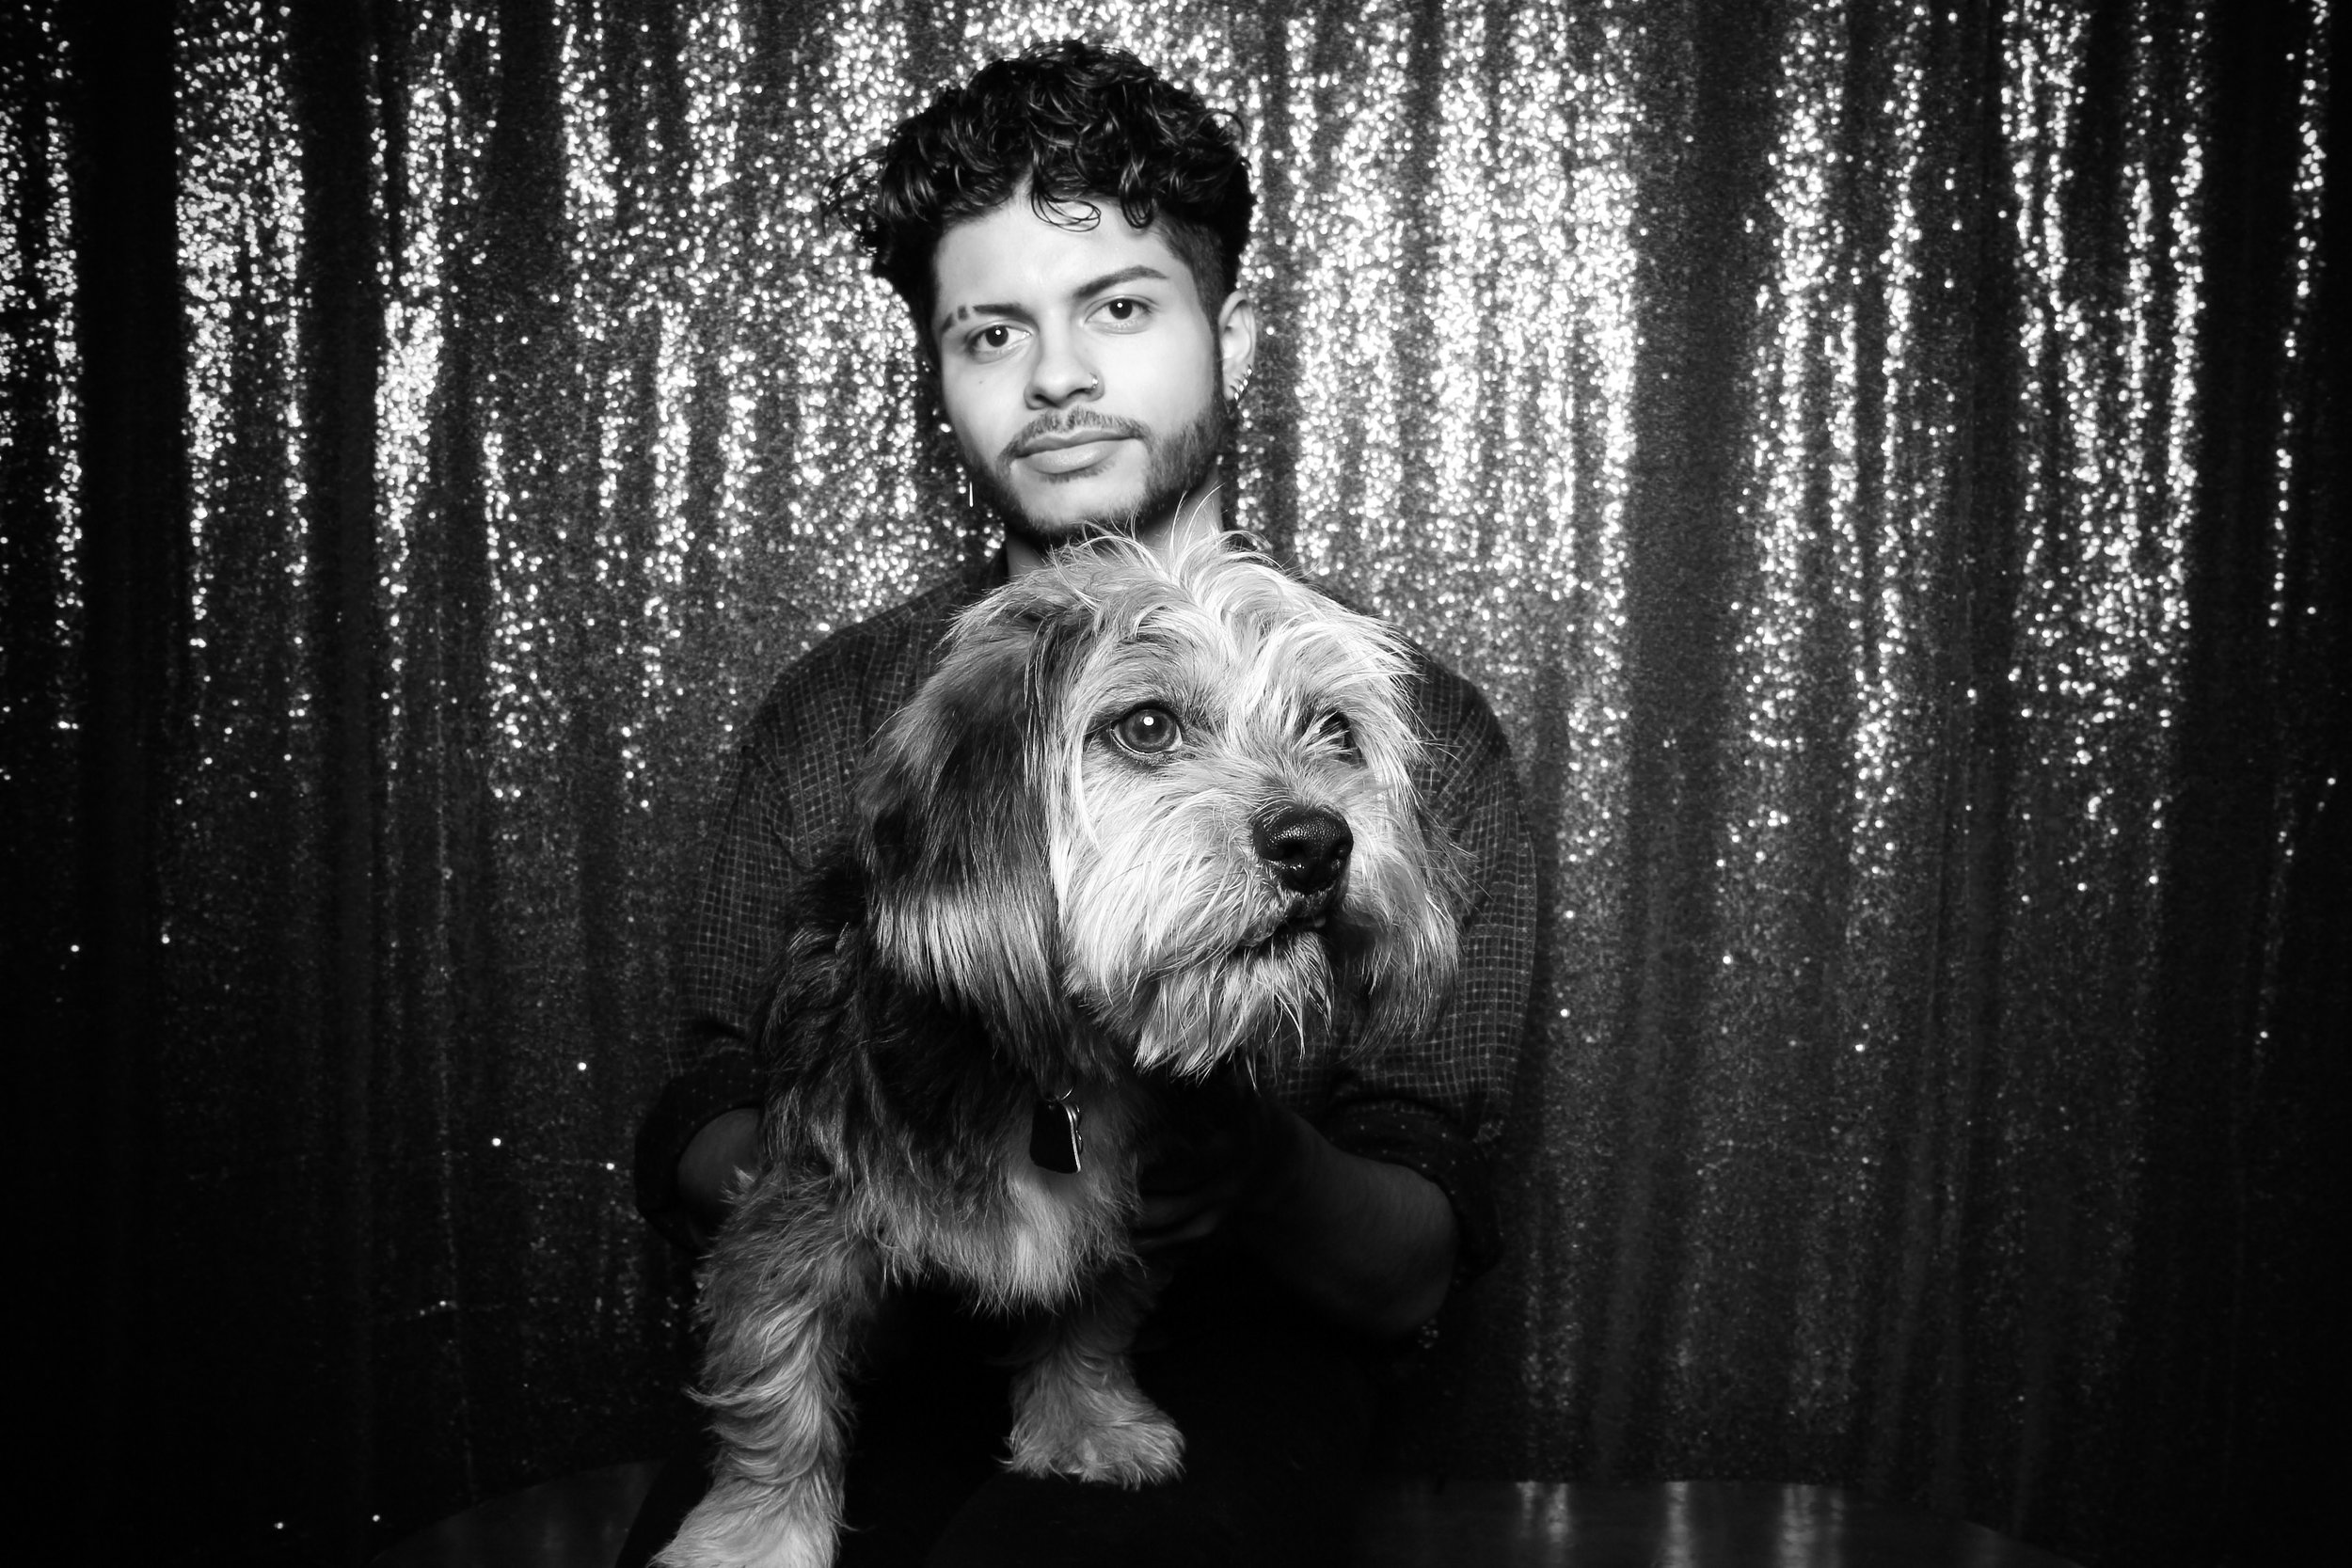 Chicago_Vintage_Photobooth_Valentines_Day_Dog_16.jpg